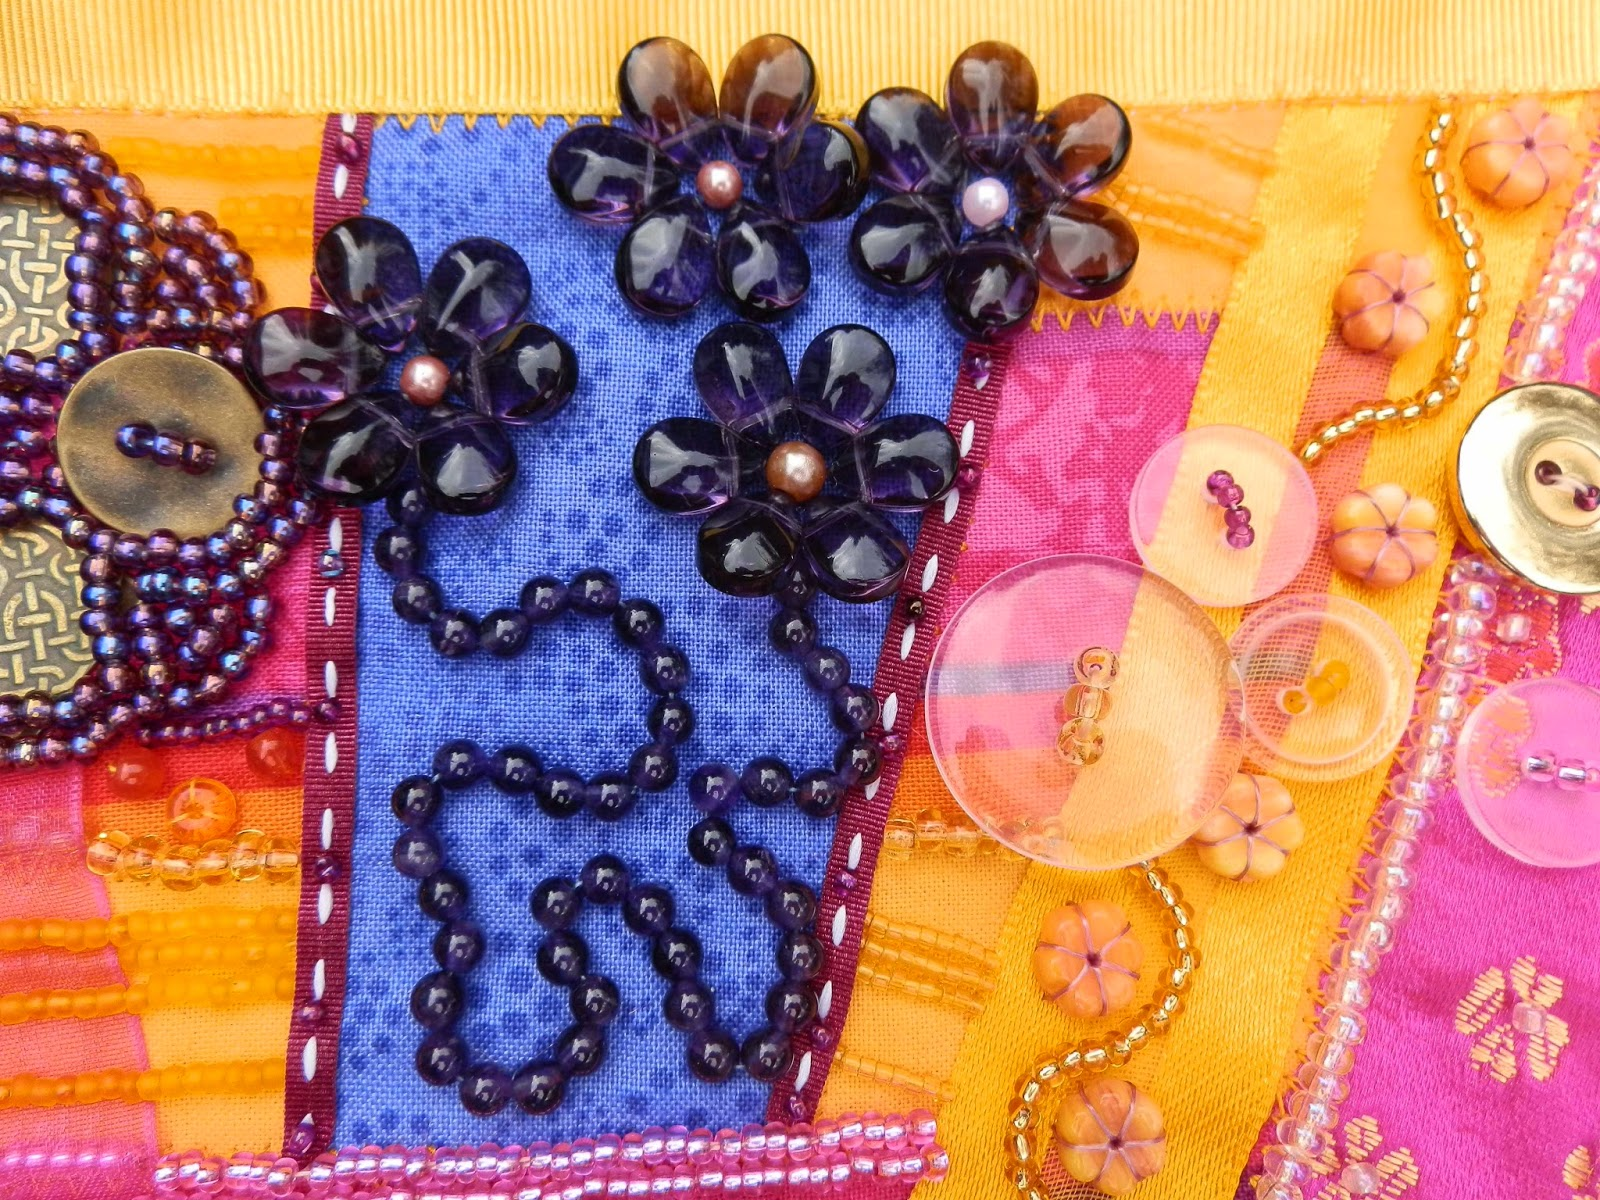 Detail showing purple beads shaped like flowers and clear beads